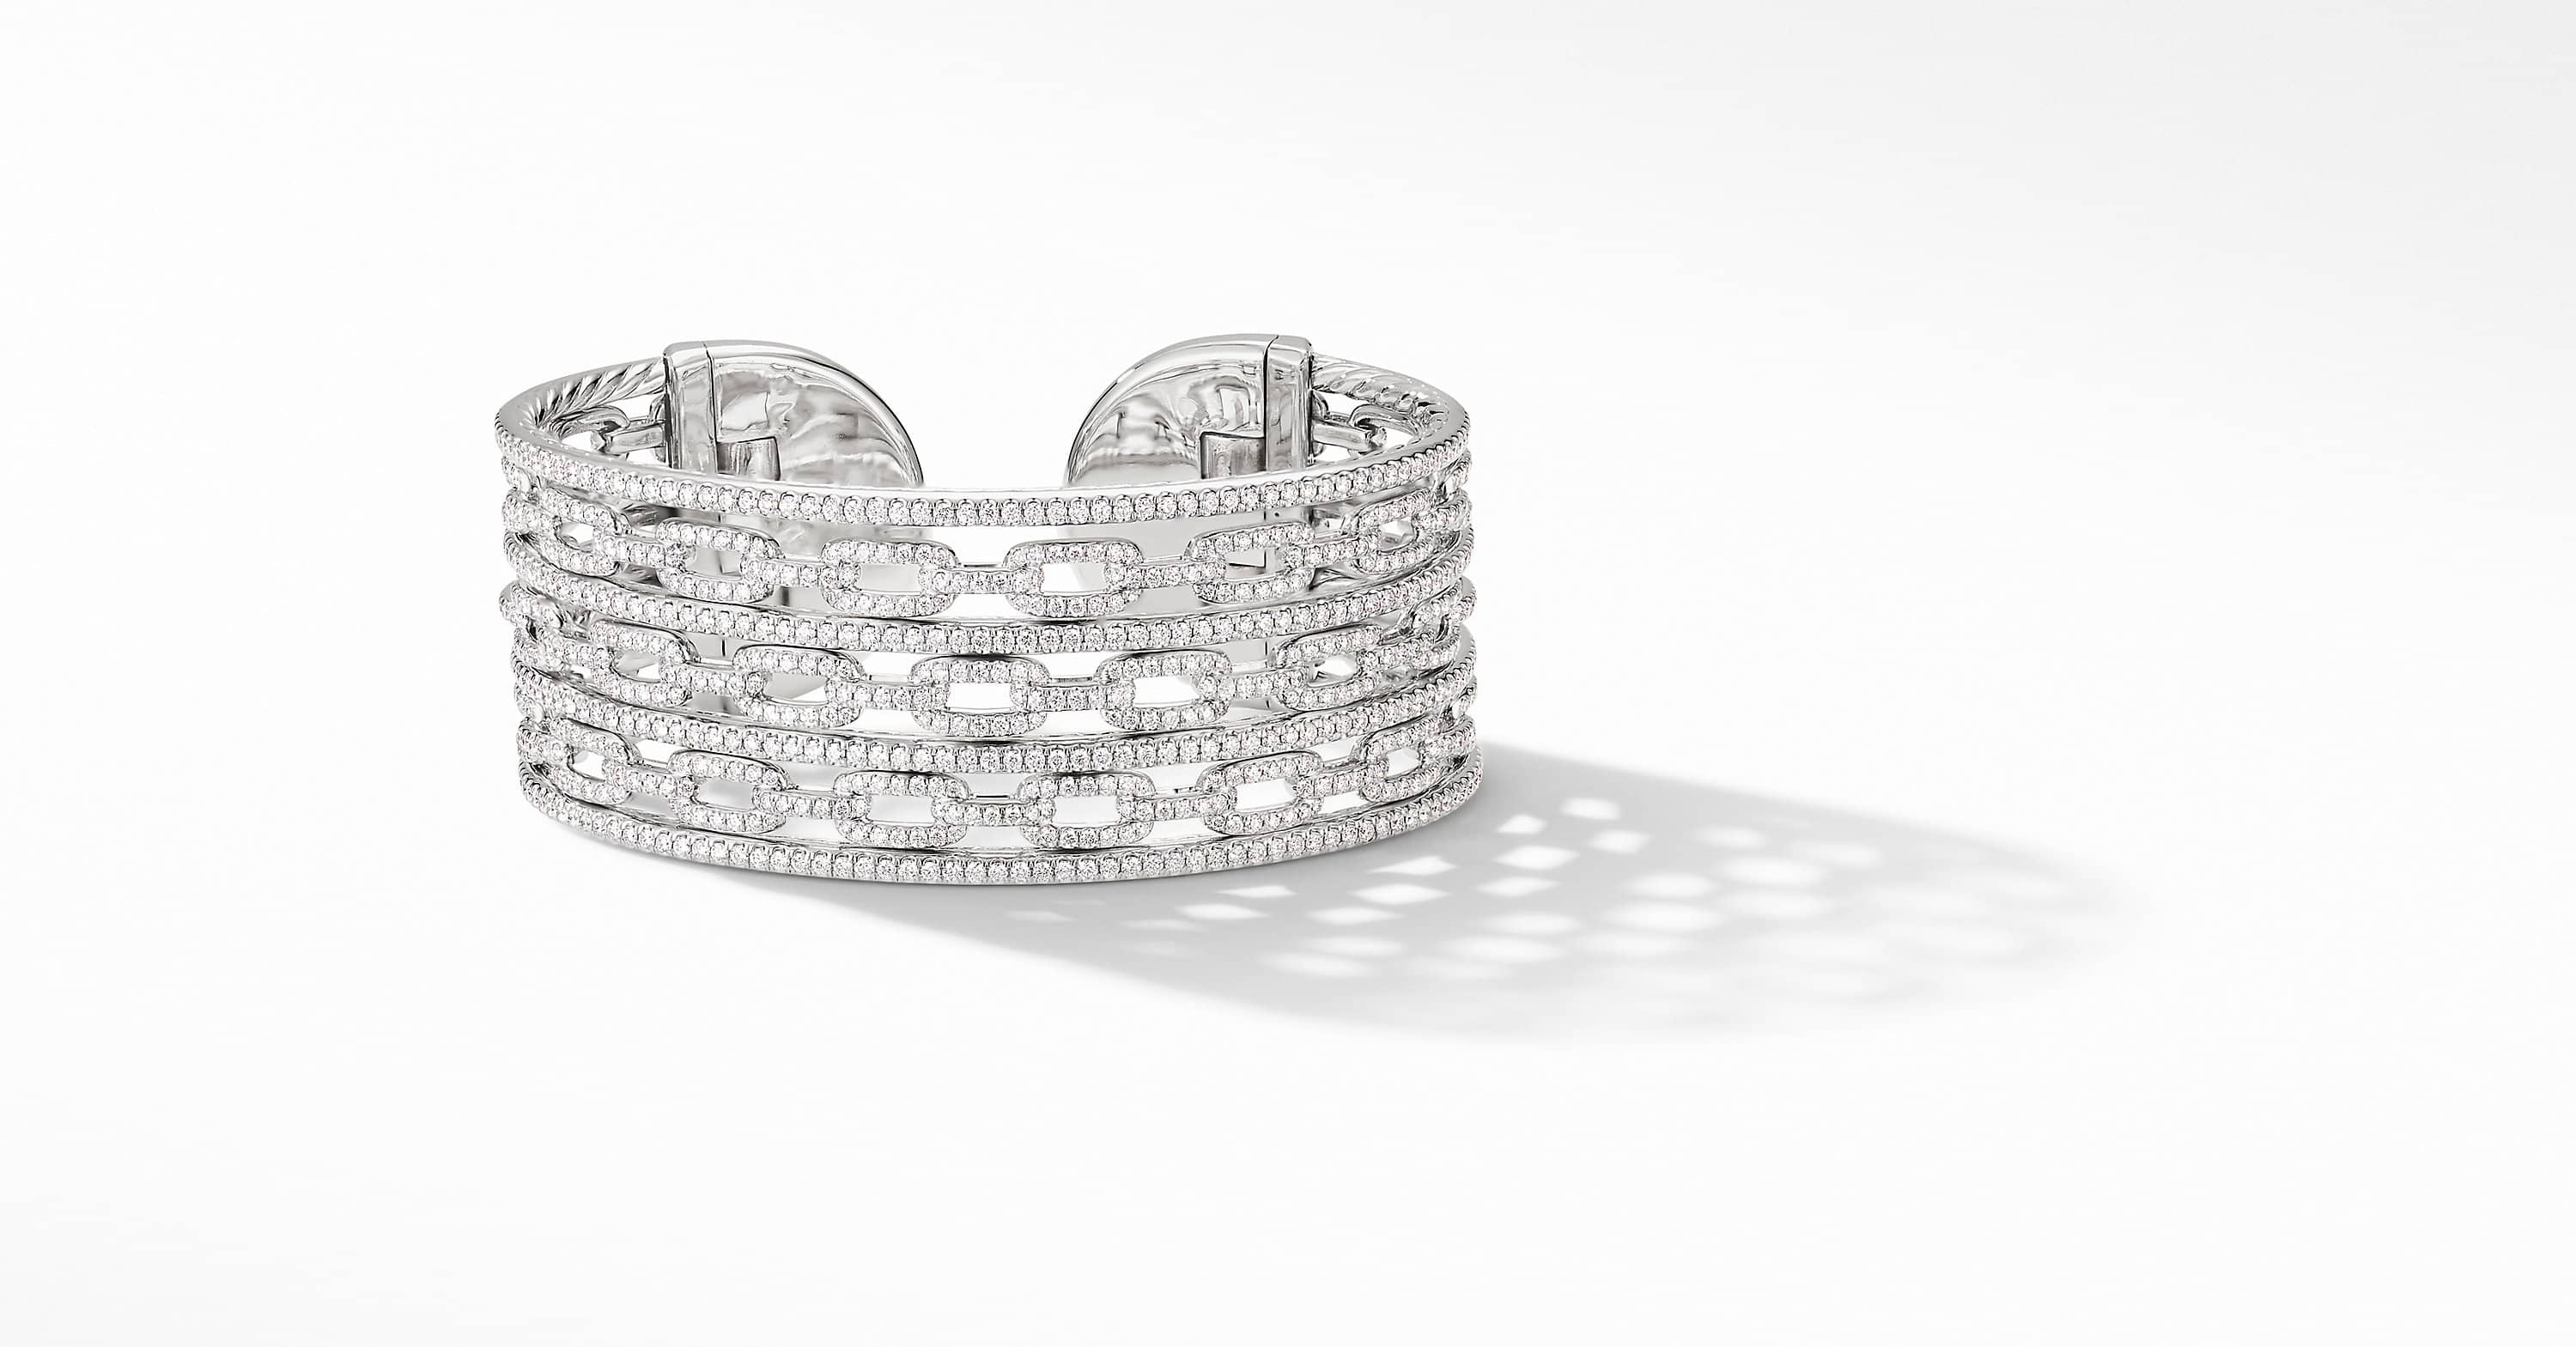 Stax Cuff Bracelet in 18K White Gold with Diamonds